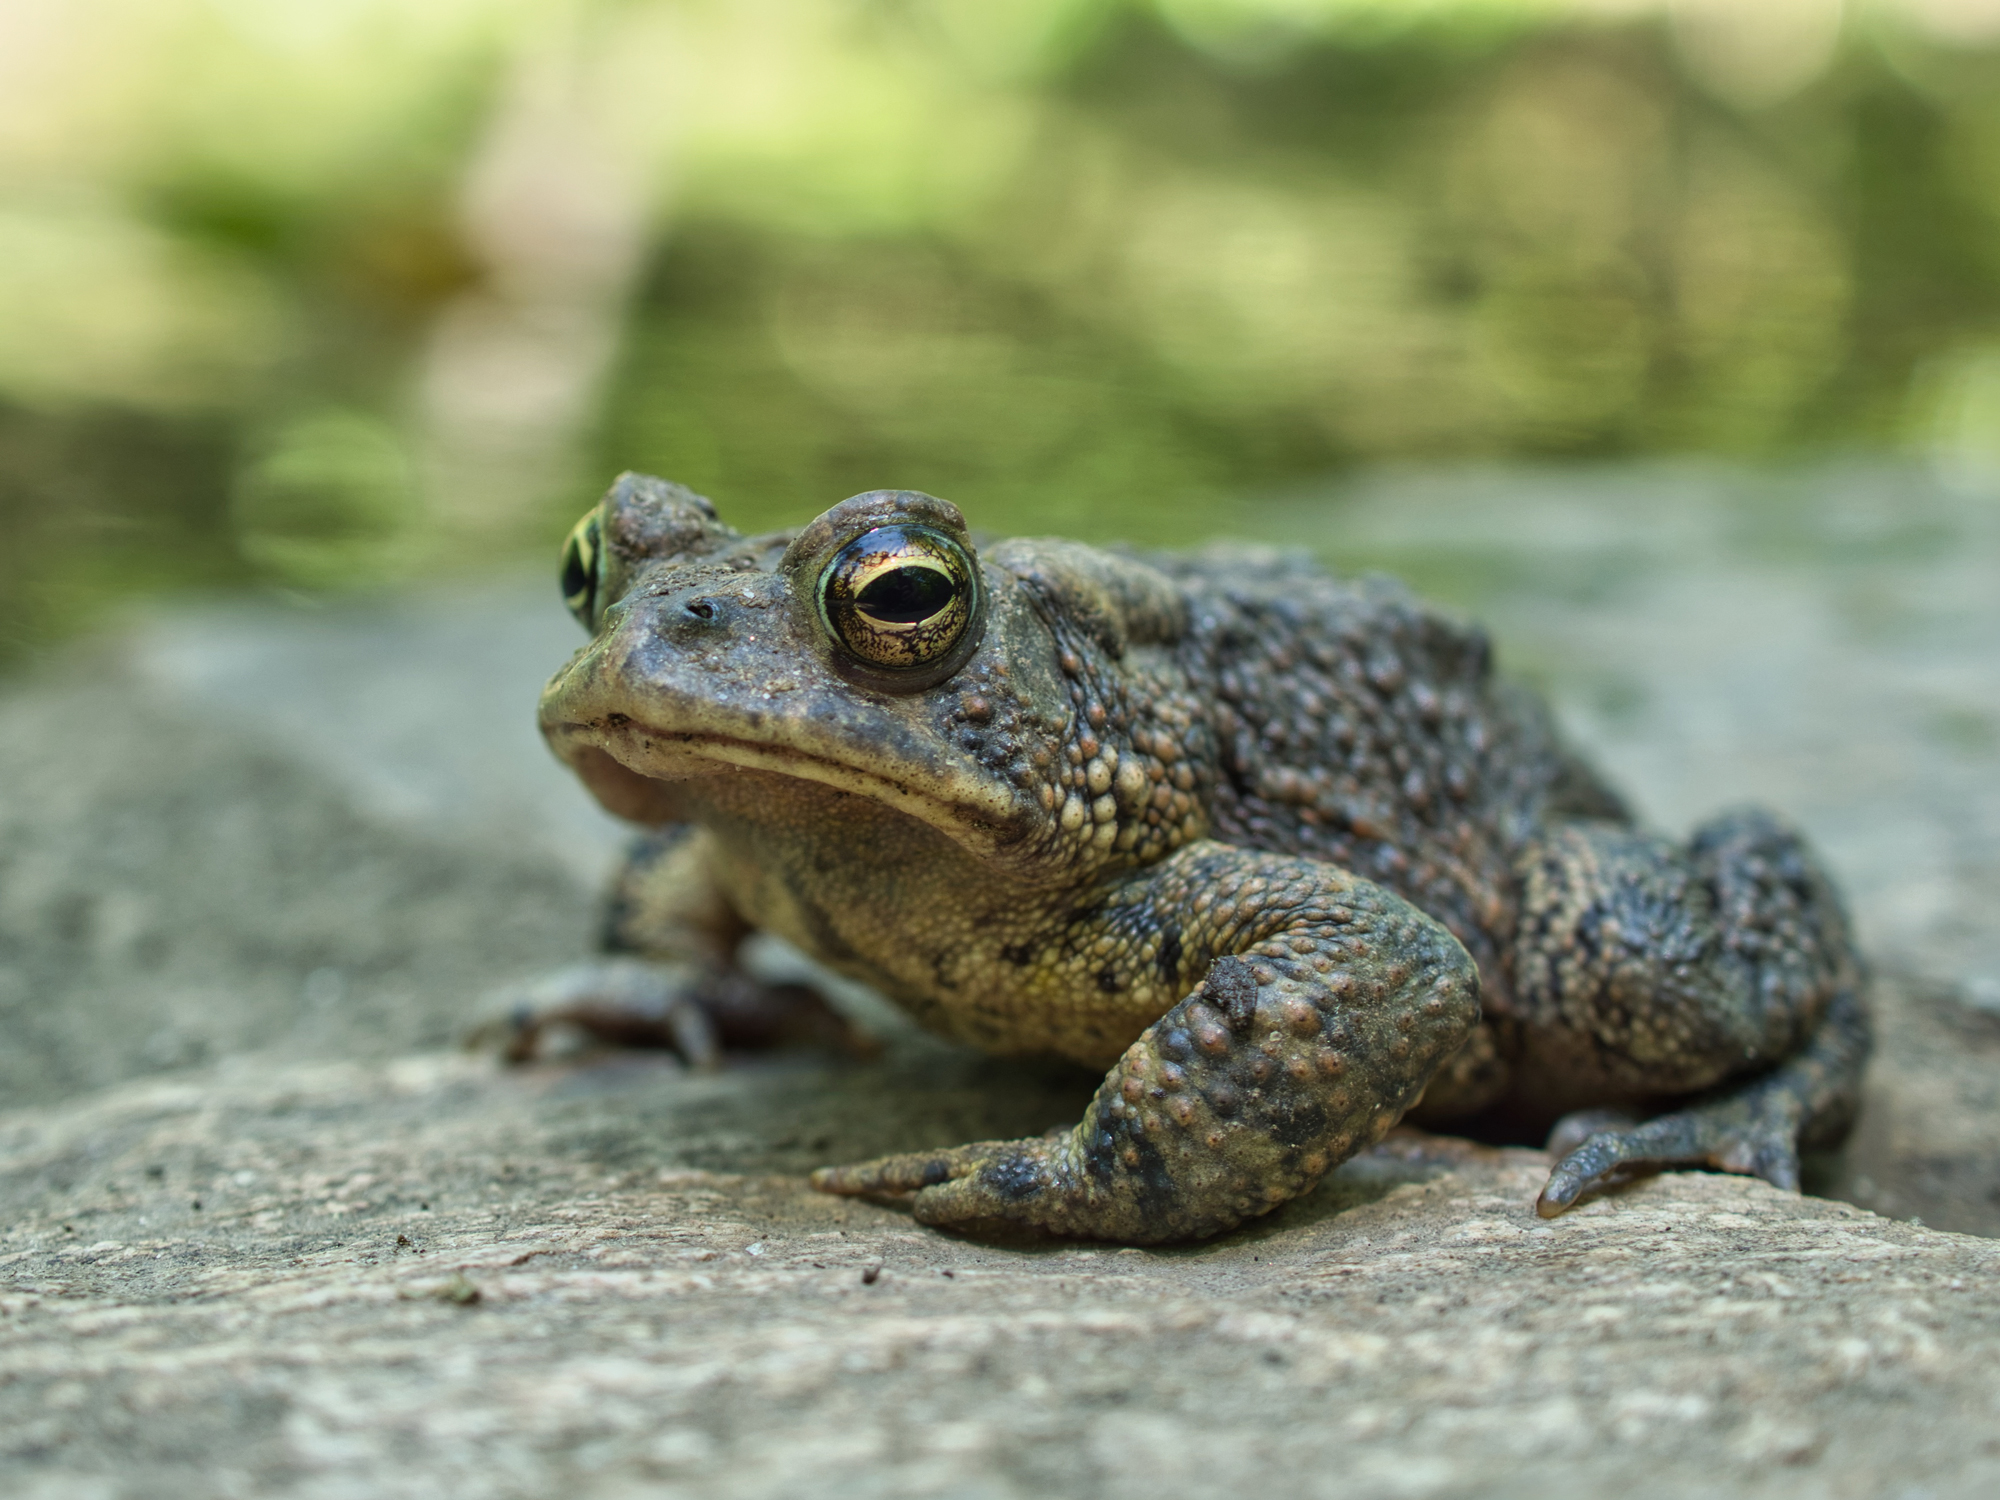 Oak Toad (Anaxyrus quercicus) can be found throughout Florida, except for the Florida Keys